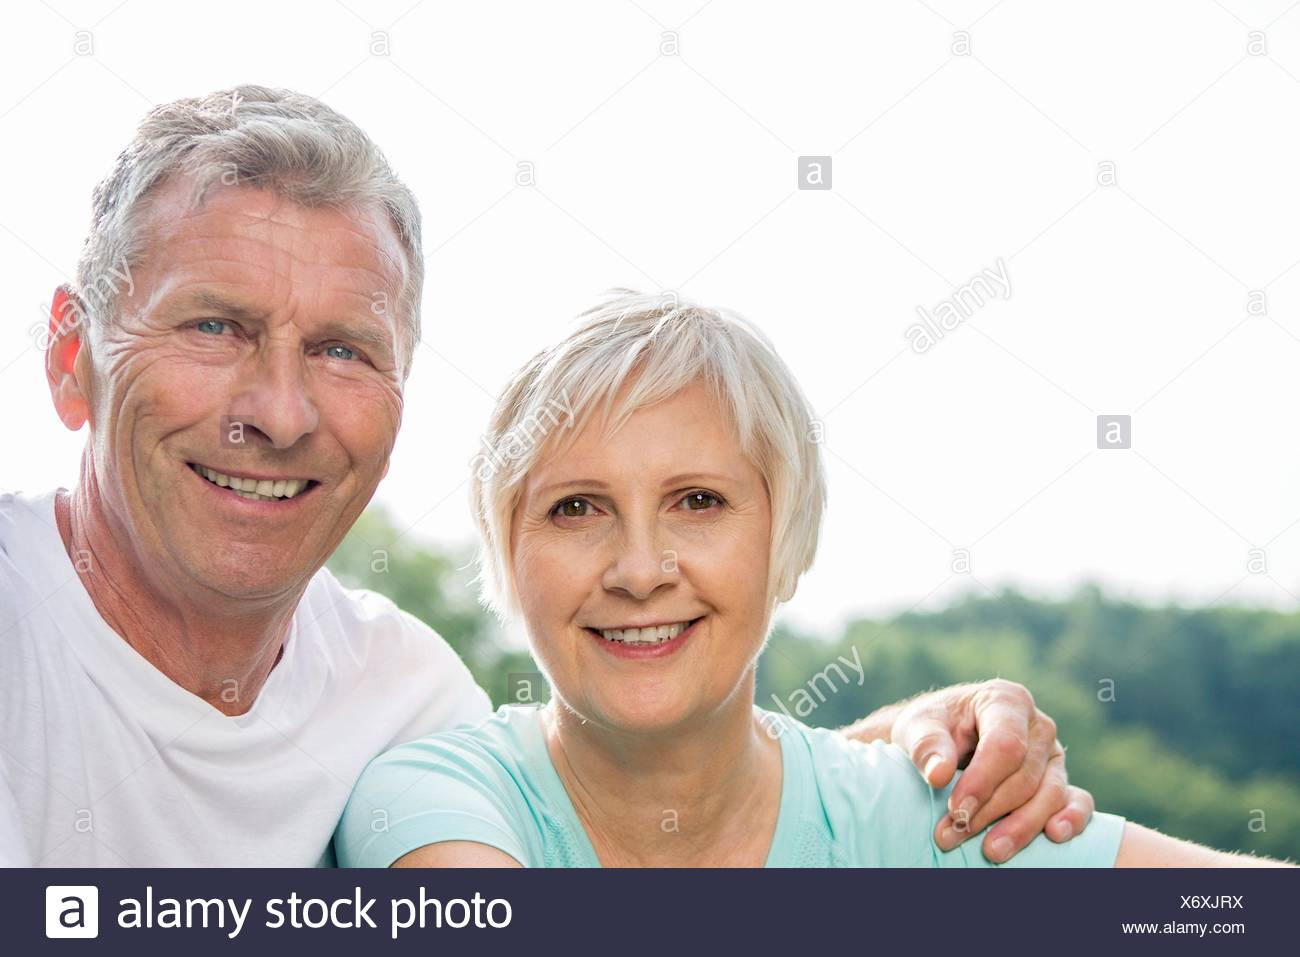 MODEL RELEASED. Senior couple smiling towards camera, man with arm around woman. Stock Photo